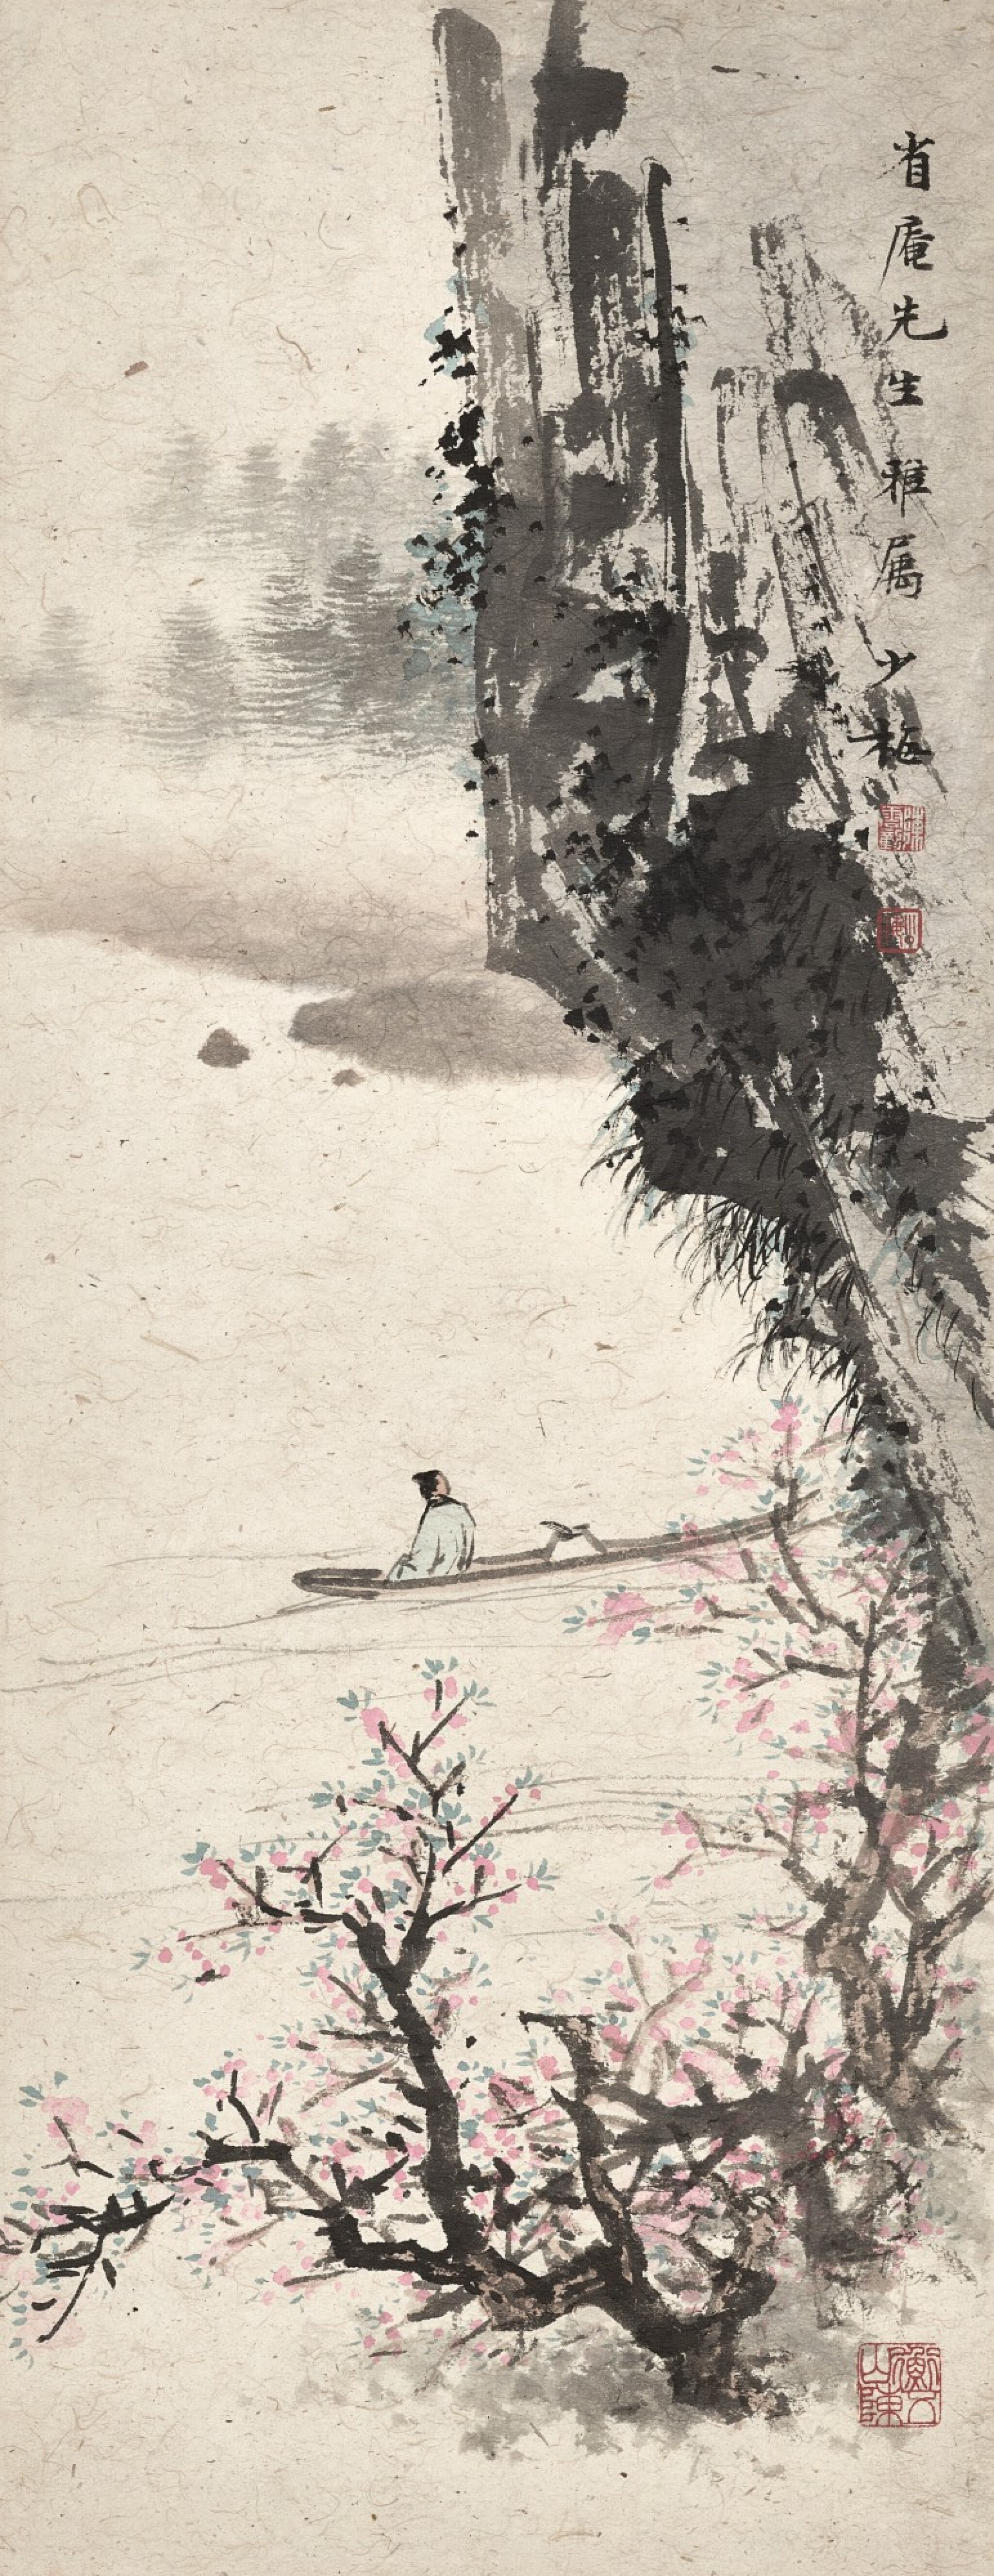 View full screen - View 1 of Lot 2558. Chen Shaomei 陳少梅   Sailing by the Blossom Trees 桃花江上.